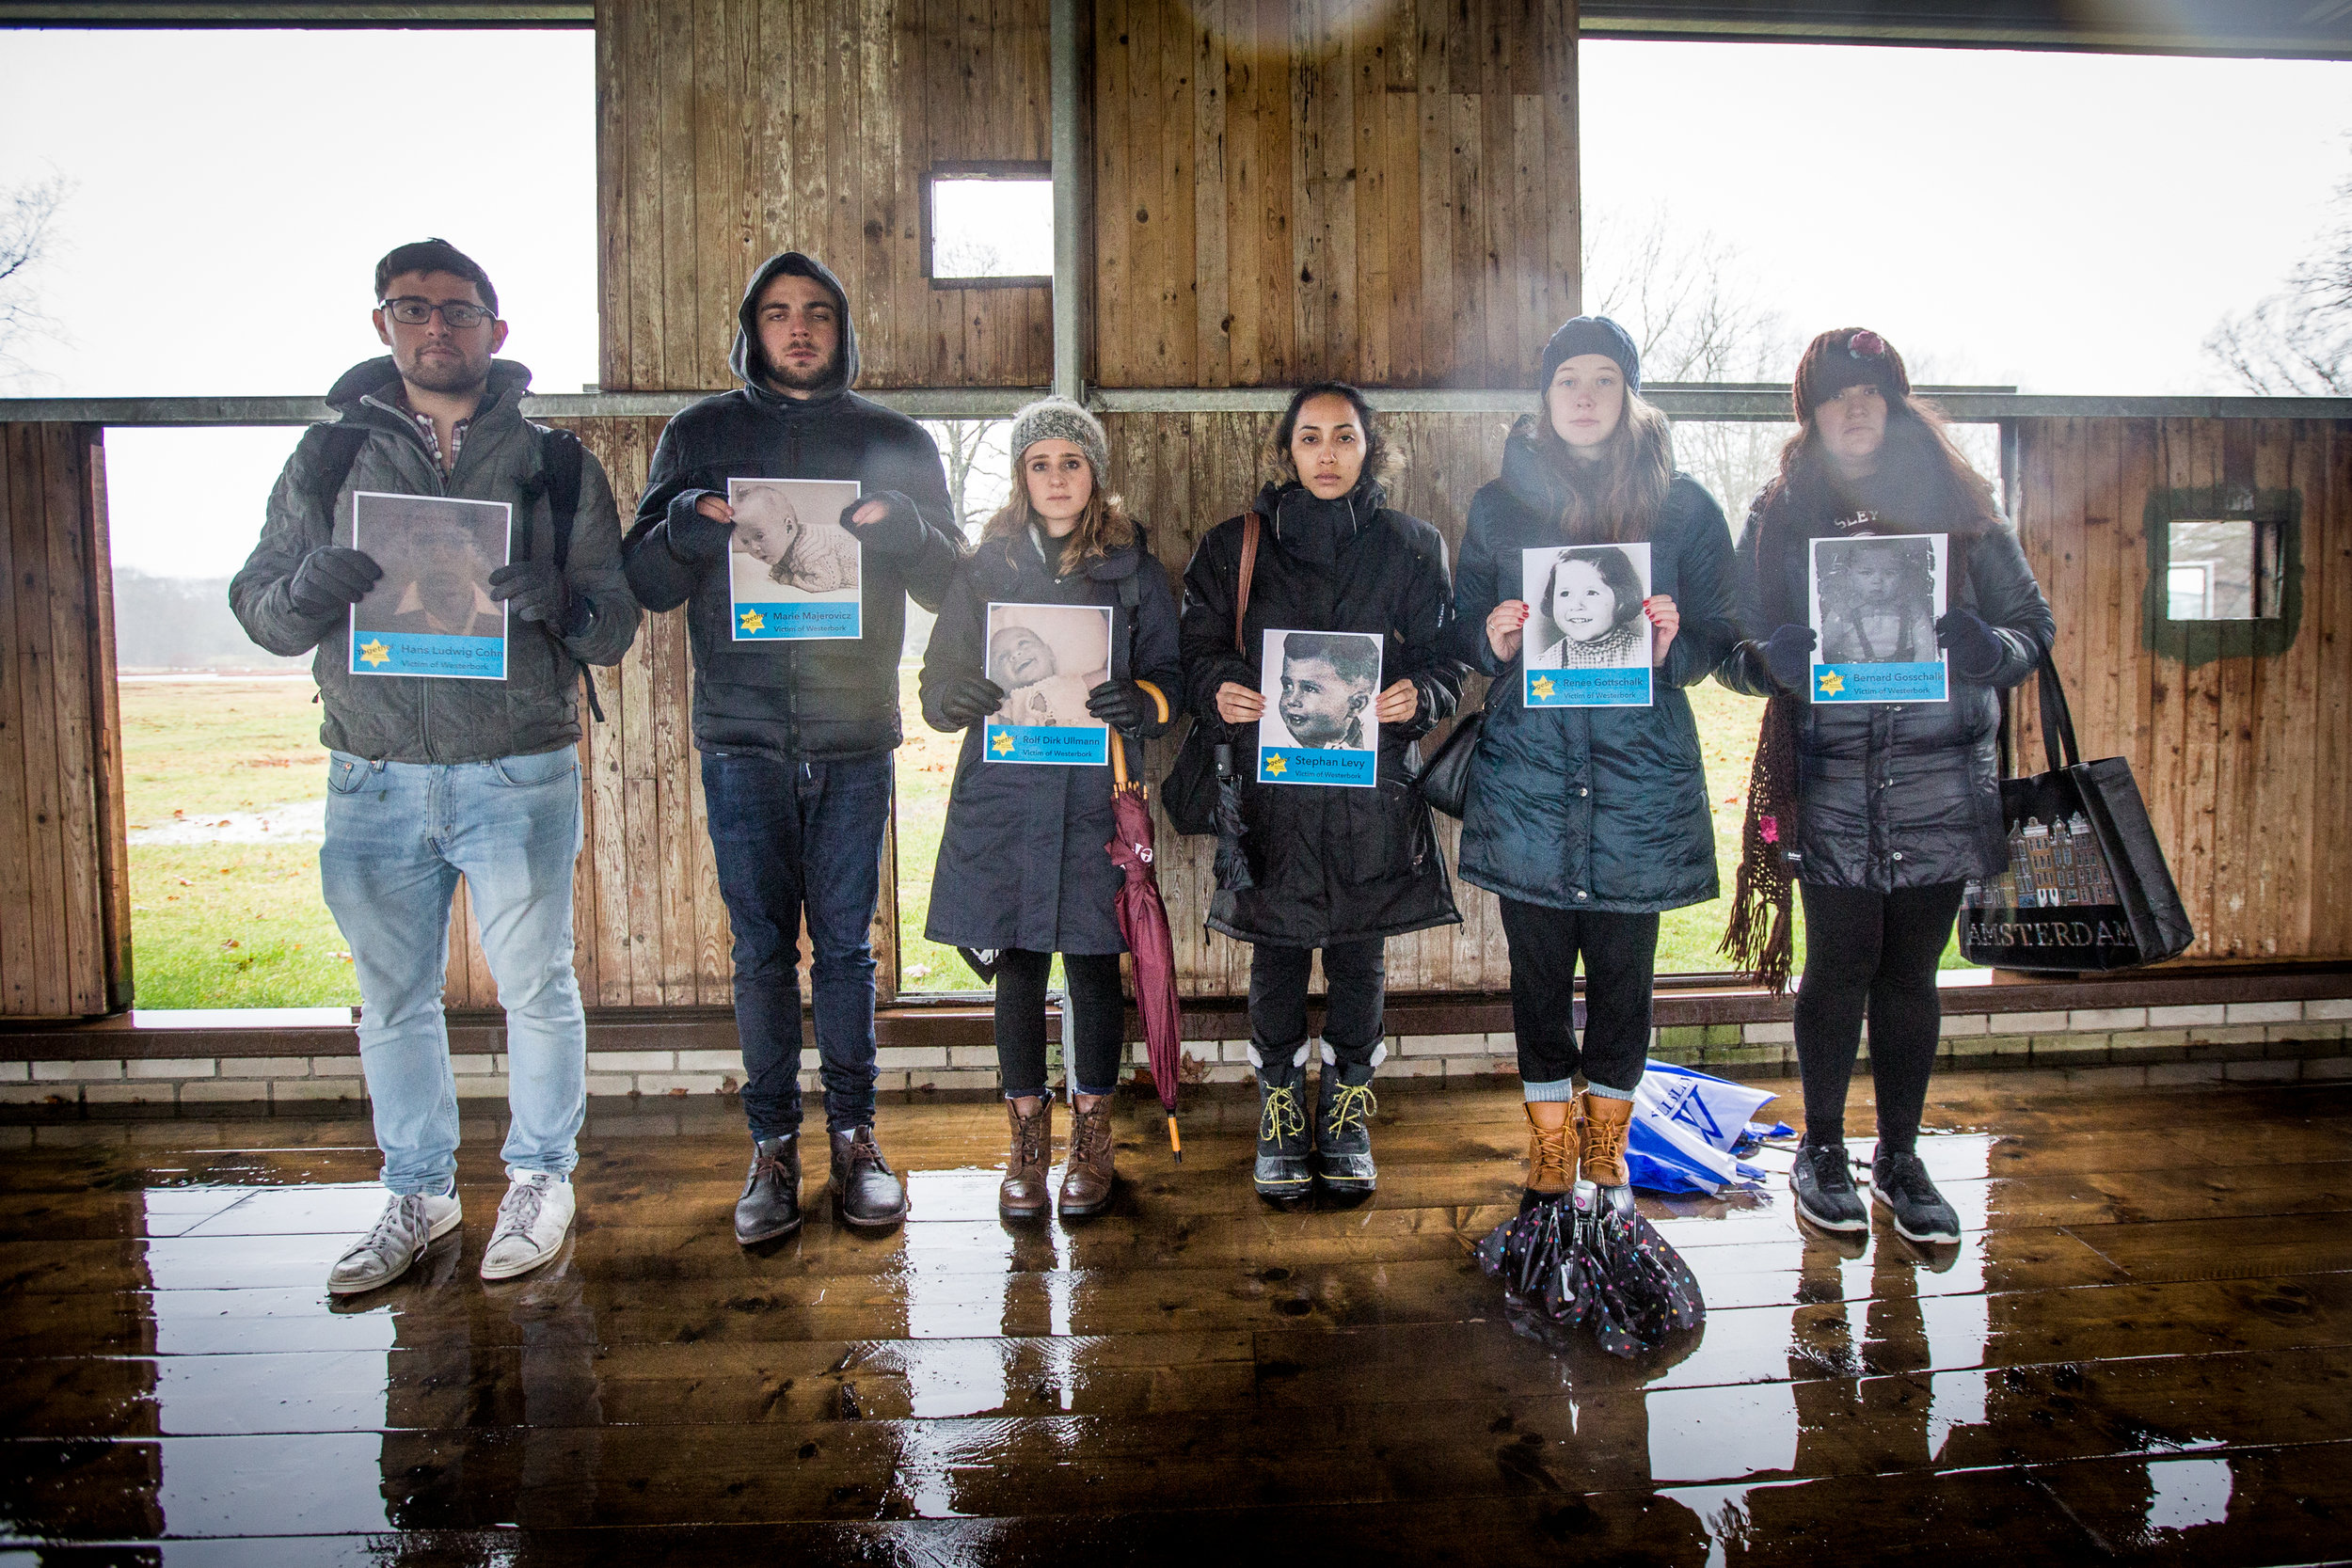 The Westerbork Transit Camp imprisoned thousands before deportation to death camps. In a brief refuge from a storm in the remains of a barrack, Fellows held the pictures of children who were ripped away from their homes and taken to the camp.